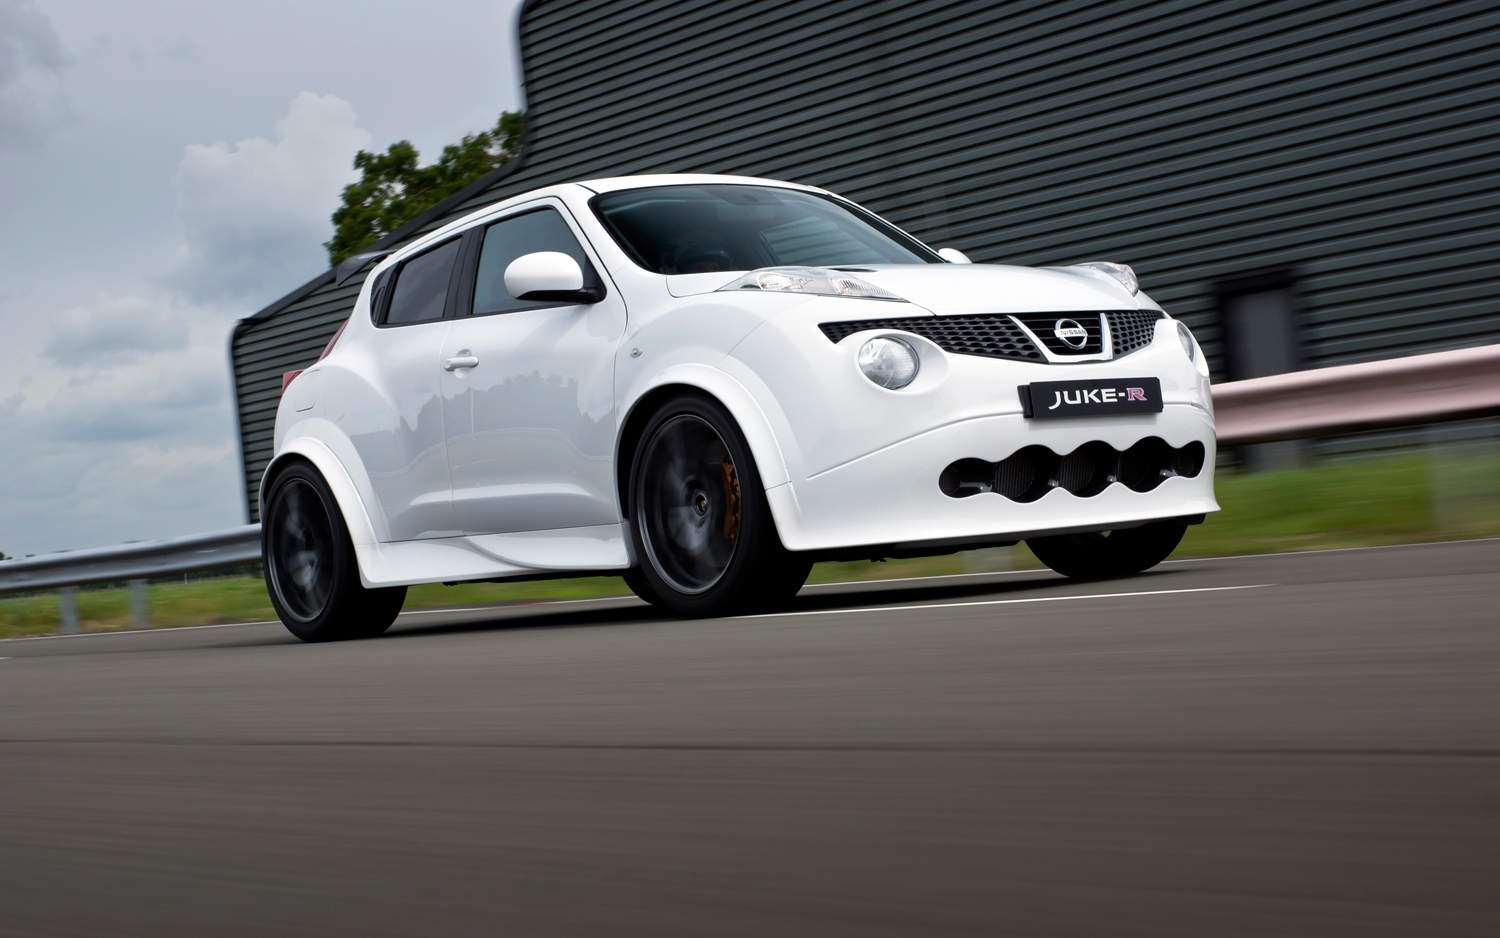 Jukezilla: First Nissan Juke-R Ready for Delivery with More Power, Revised  Styling